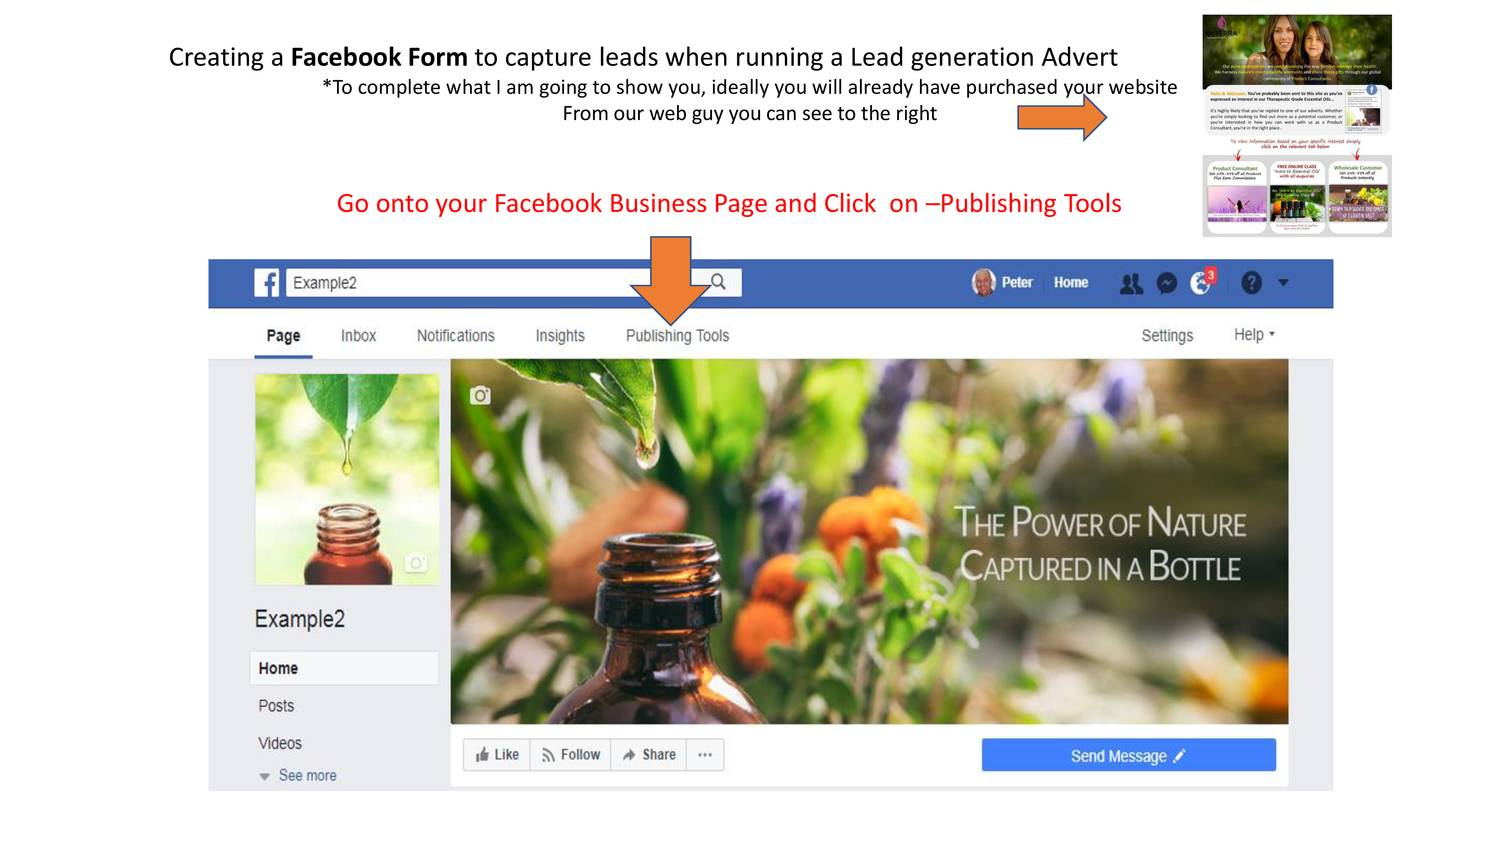 Creating a Facebook Lead Form pptx | DocDroid